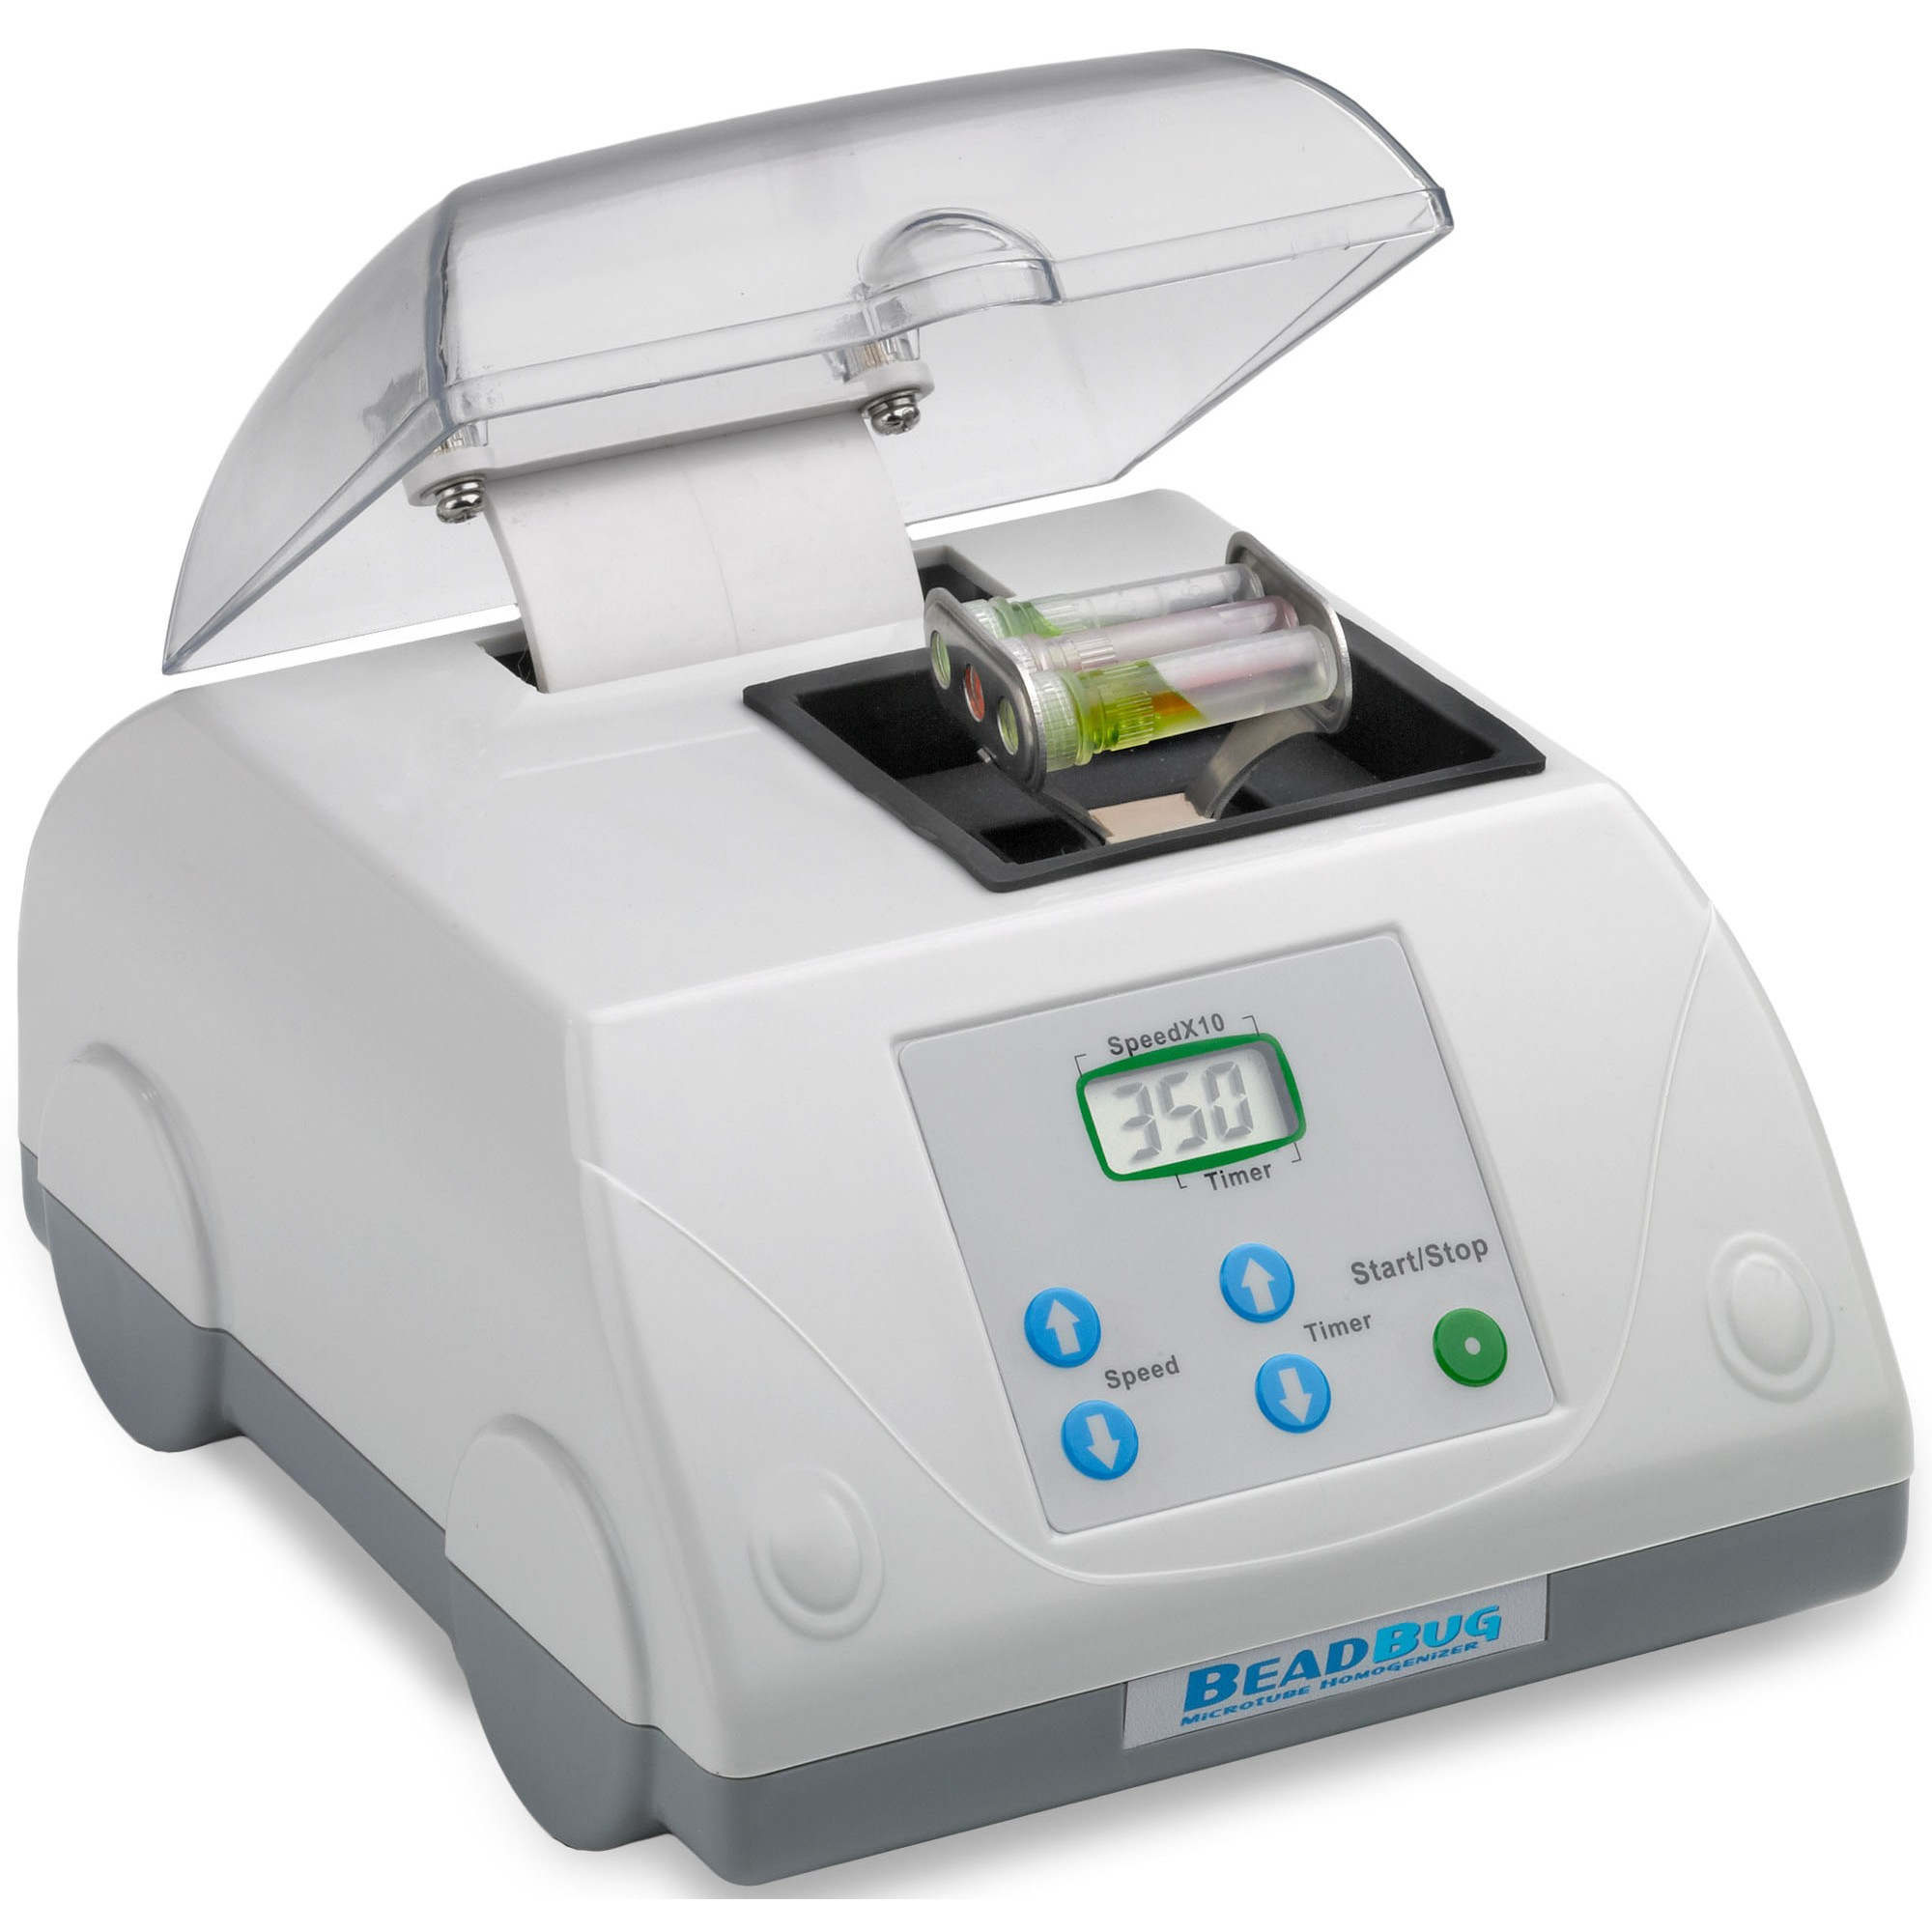 BeadBug Microtube Homogeniser and Accessories, Benchmark Scientific